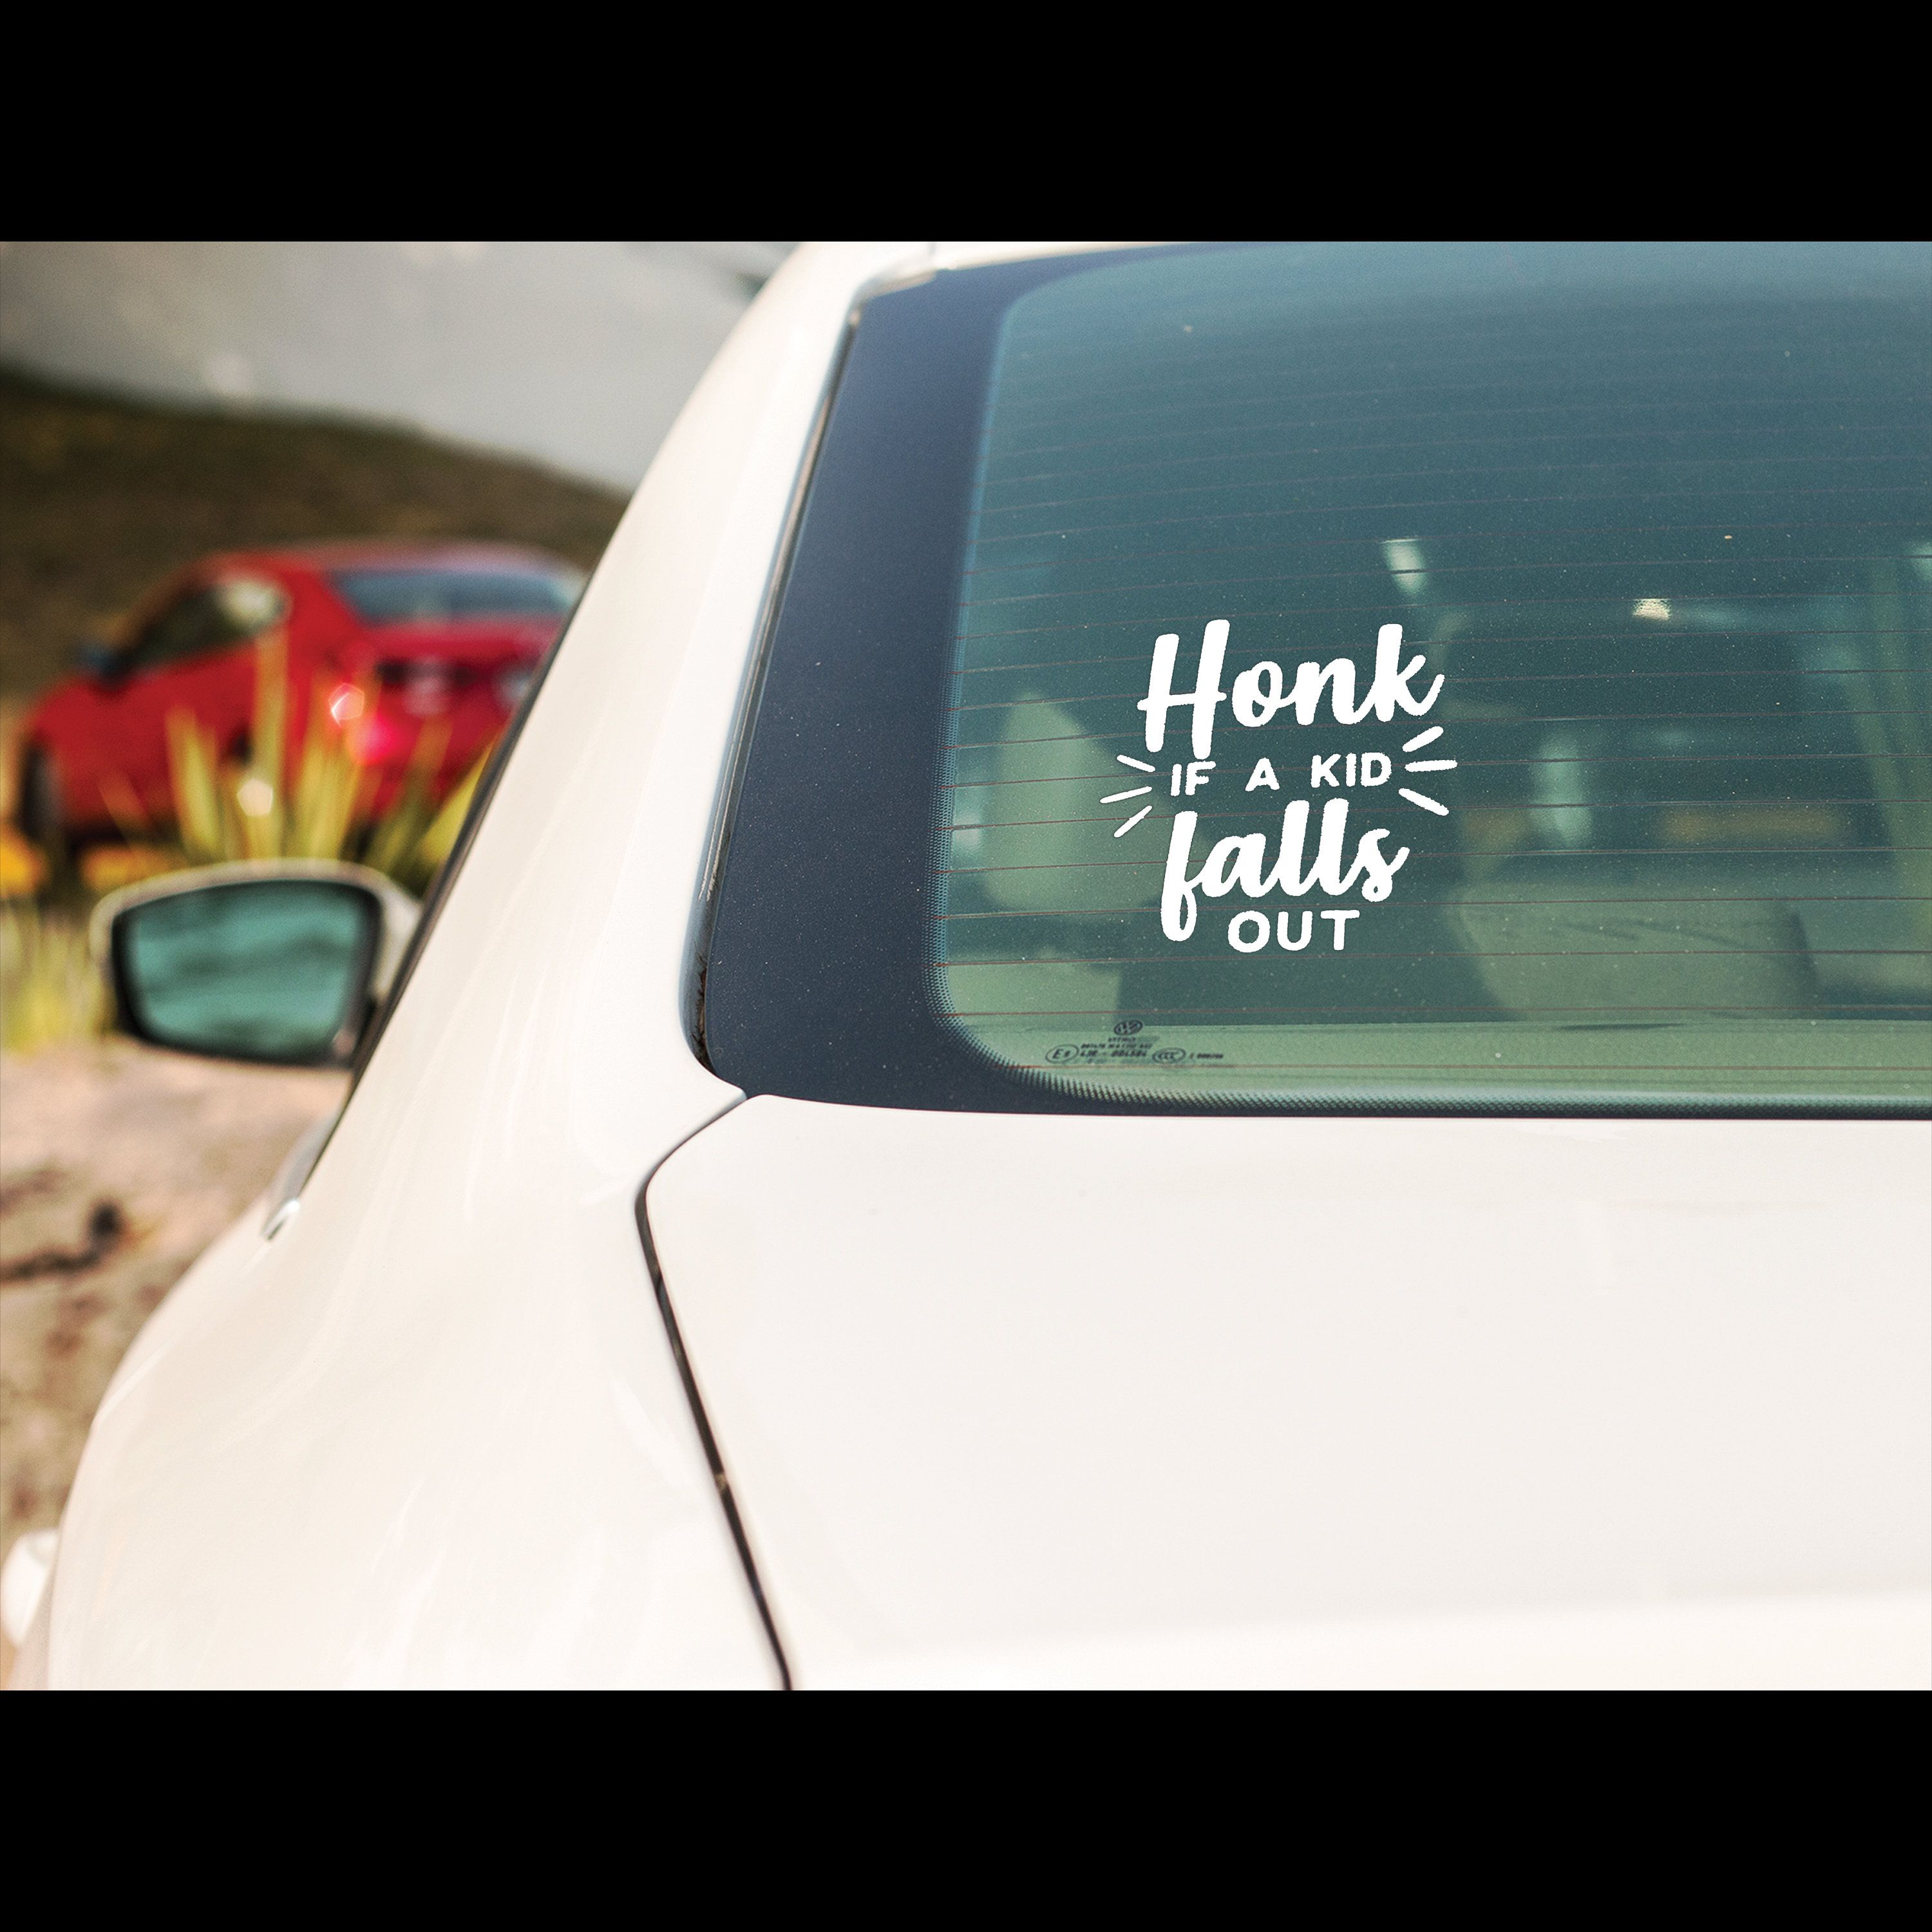 Excited To Share This Item From My Etsy Shop Honk If A Kid Falls Out Vinyl Car Decal Vinyl Sticker H Vinyl Car Stickers Car Window Decals Car Decals Vinyl [ 3000 x 3000 Pixel ]